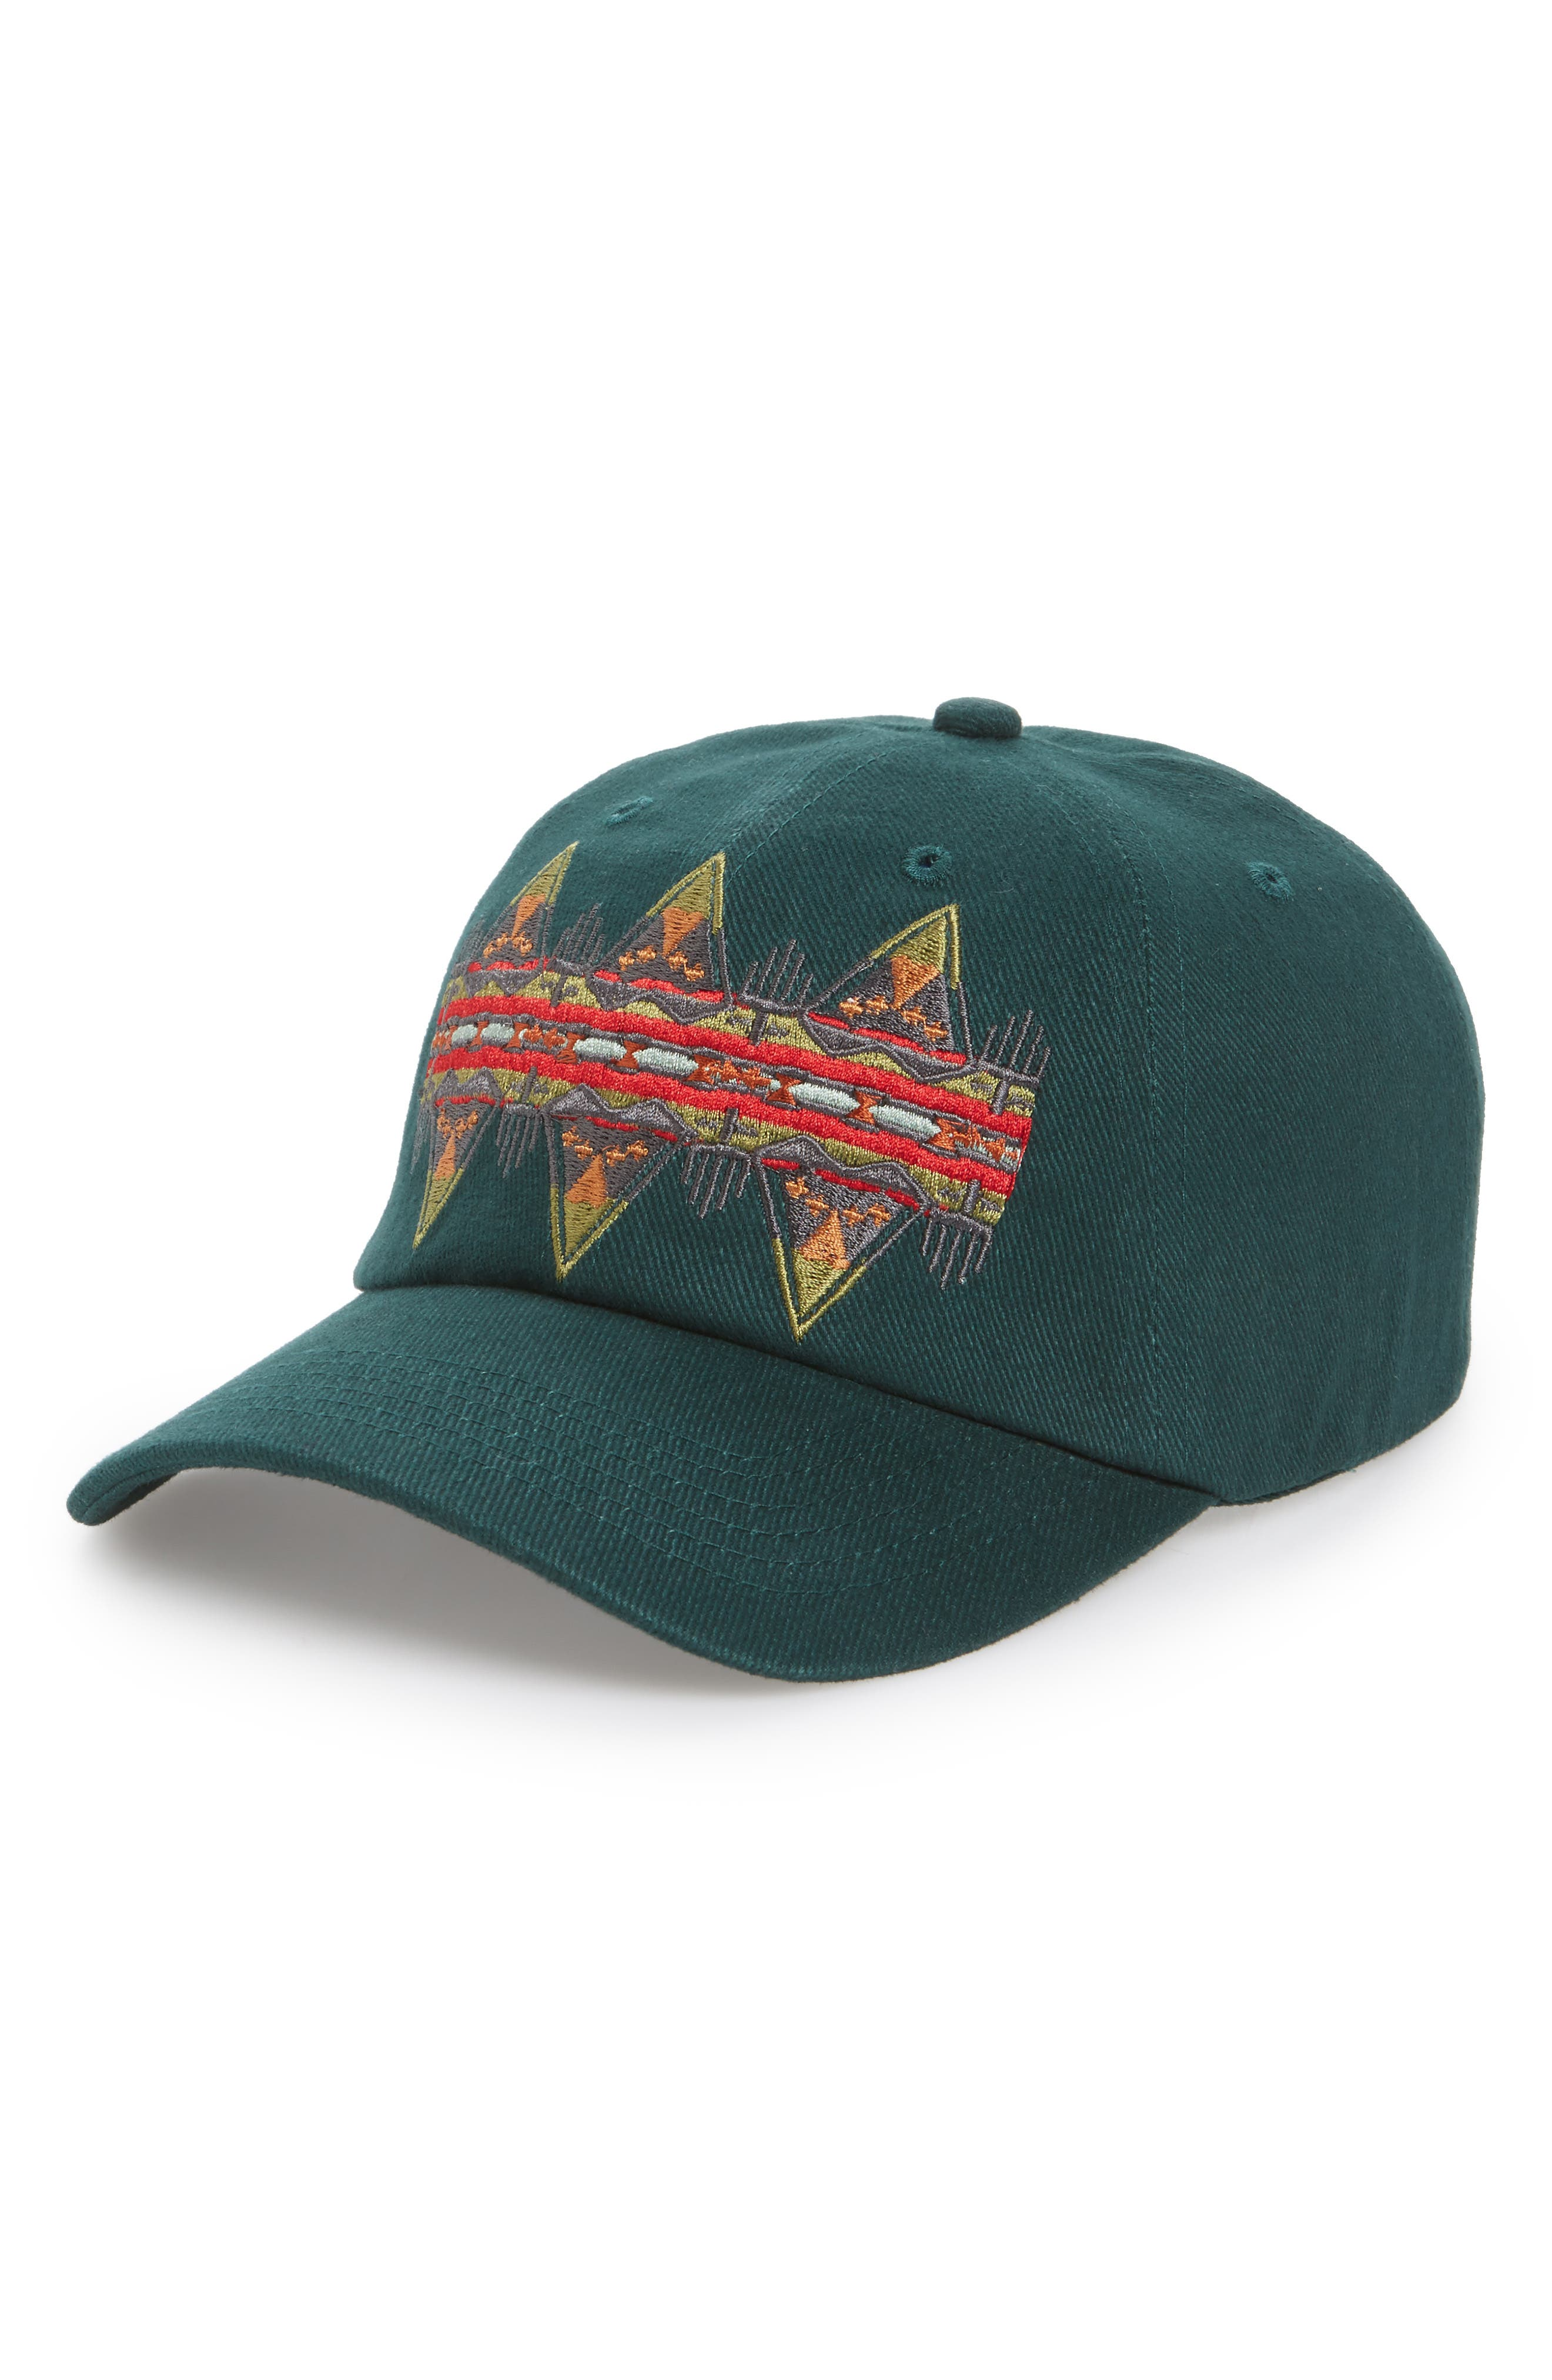 Embroidered Ball Cap,                         Main,                         color, 315